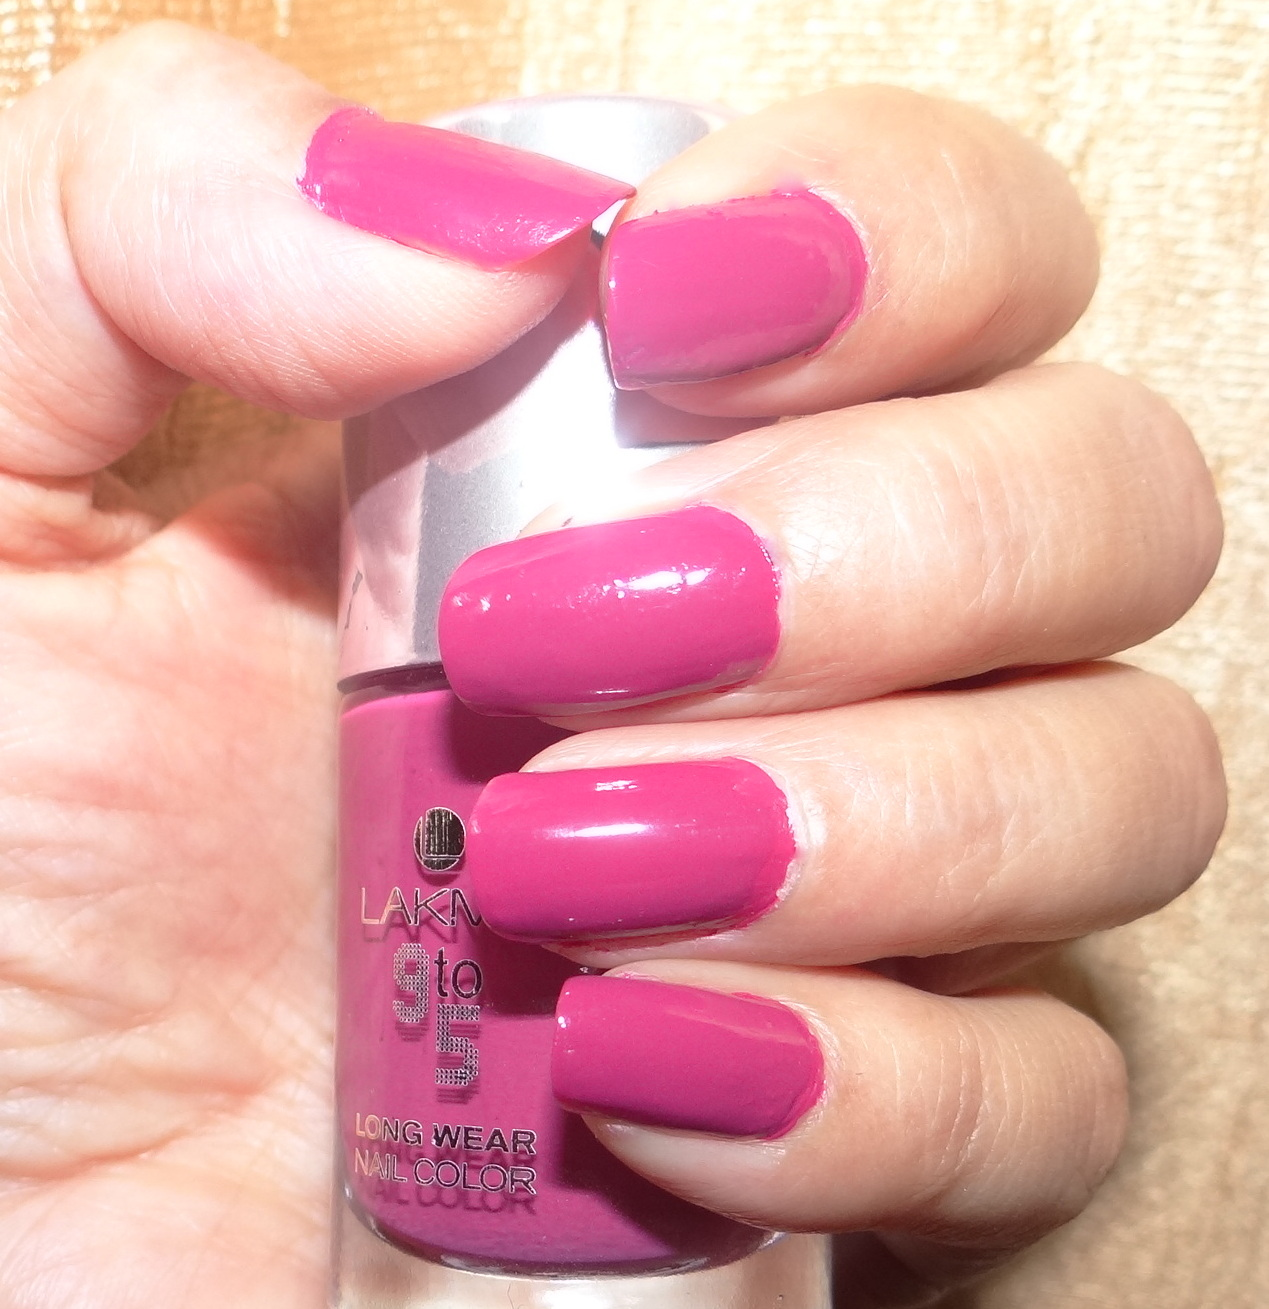 Be 9 to 5 ready with Lakme Nail colors